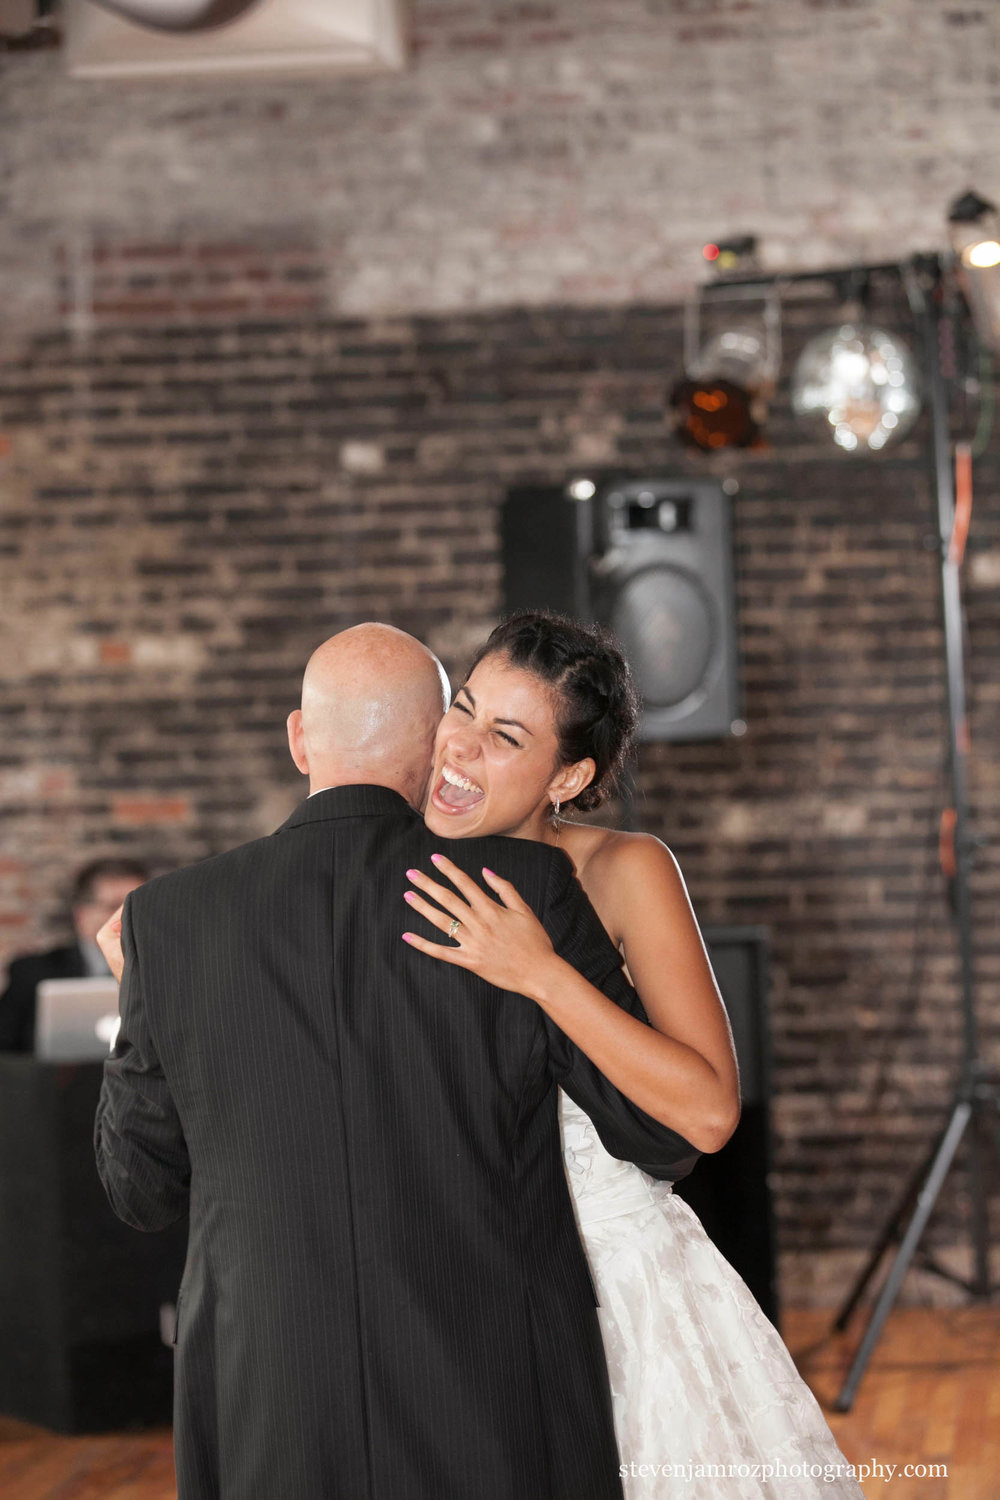 230-stockroom-first-dance-photography-0935.jpg